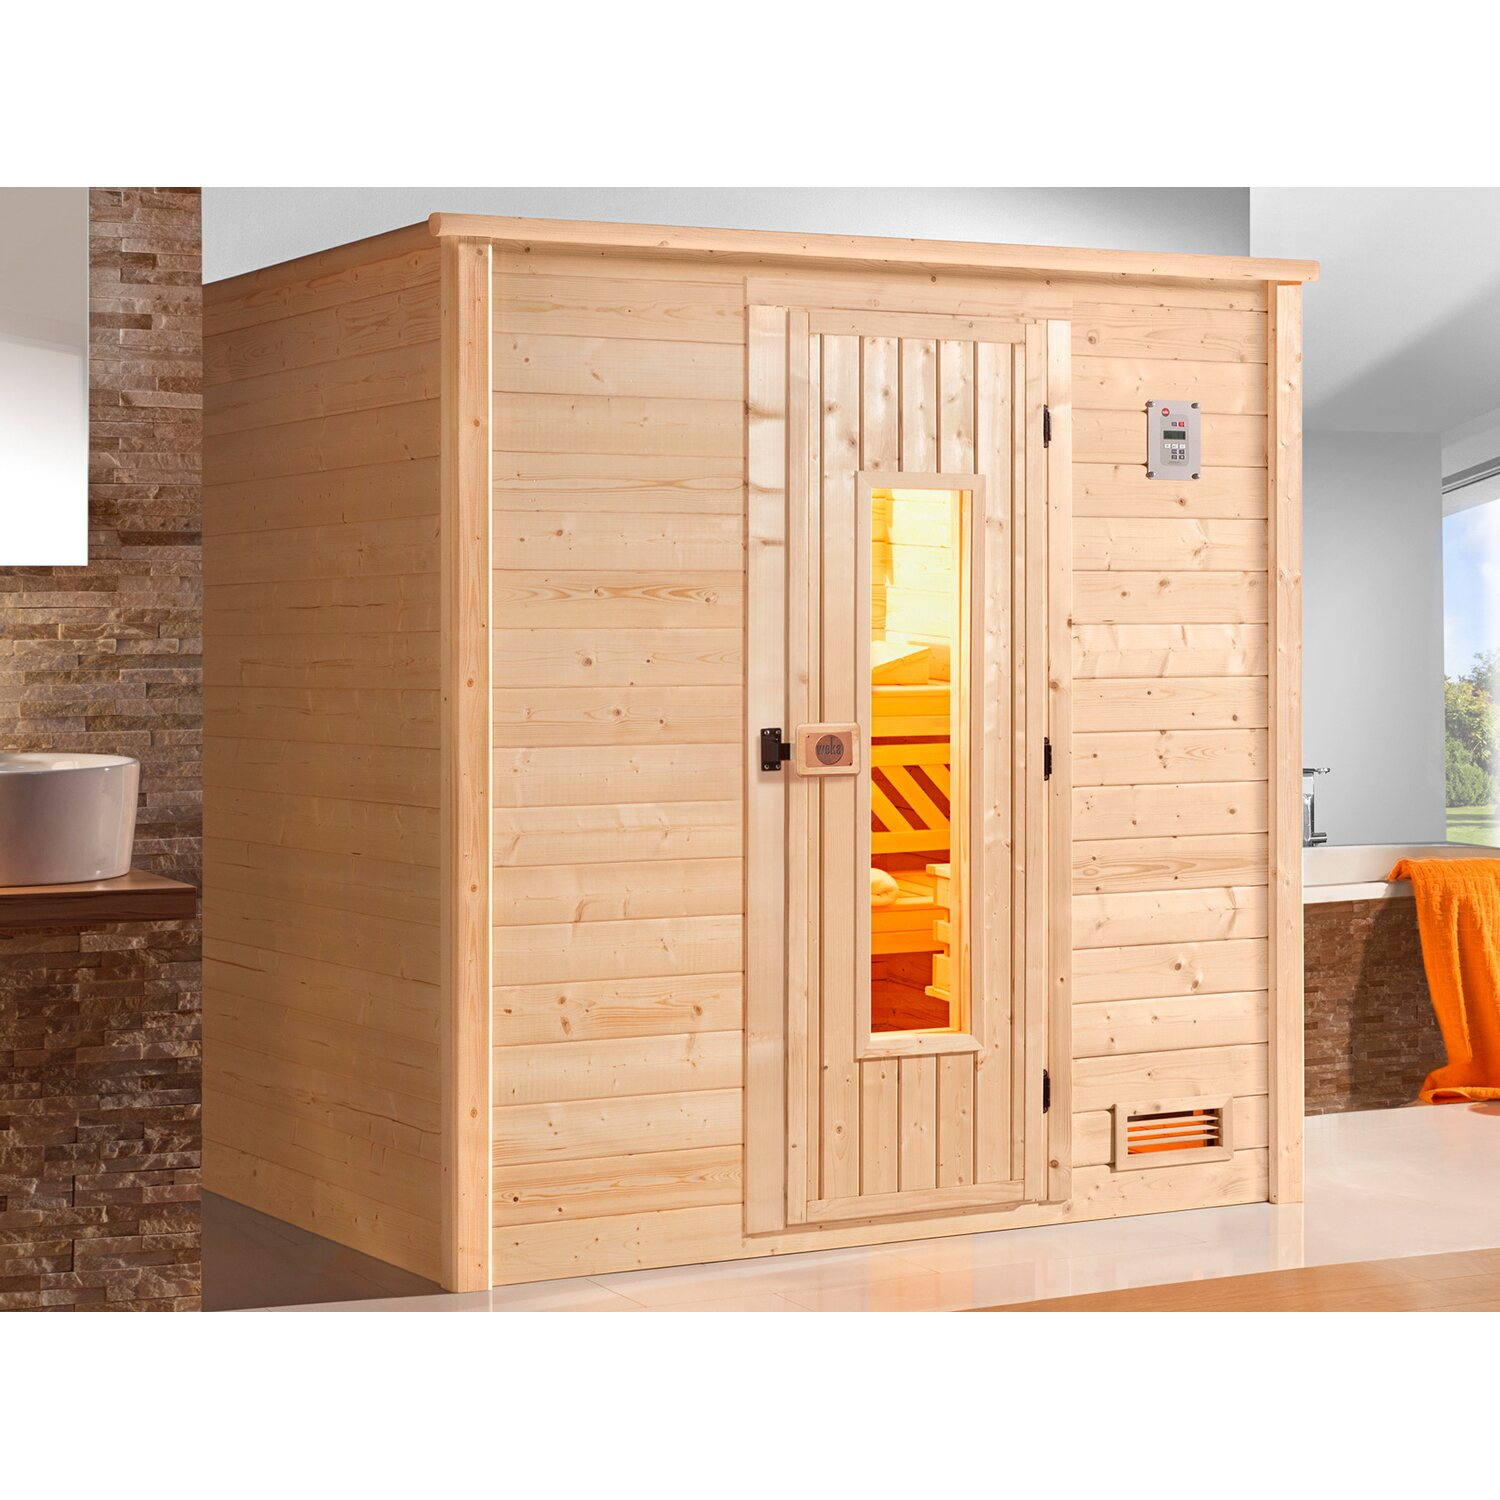 weka massivholz sauna 530 gr 1 mit holzt r ohne ofen. Black Bedroom Furniture Sets. Home Design Ideas